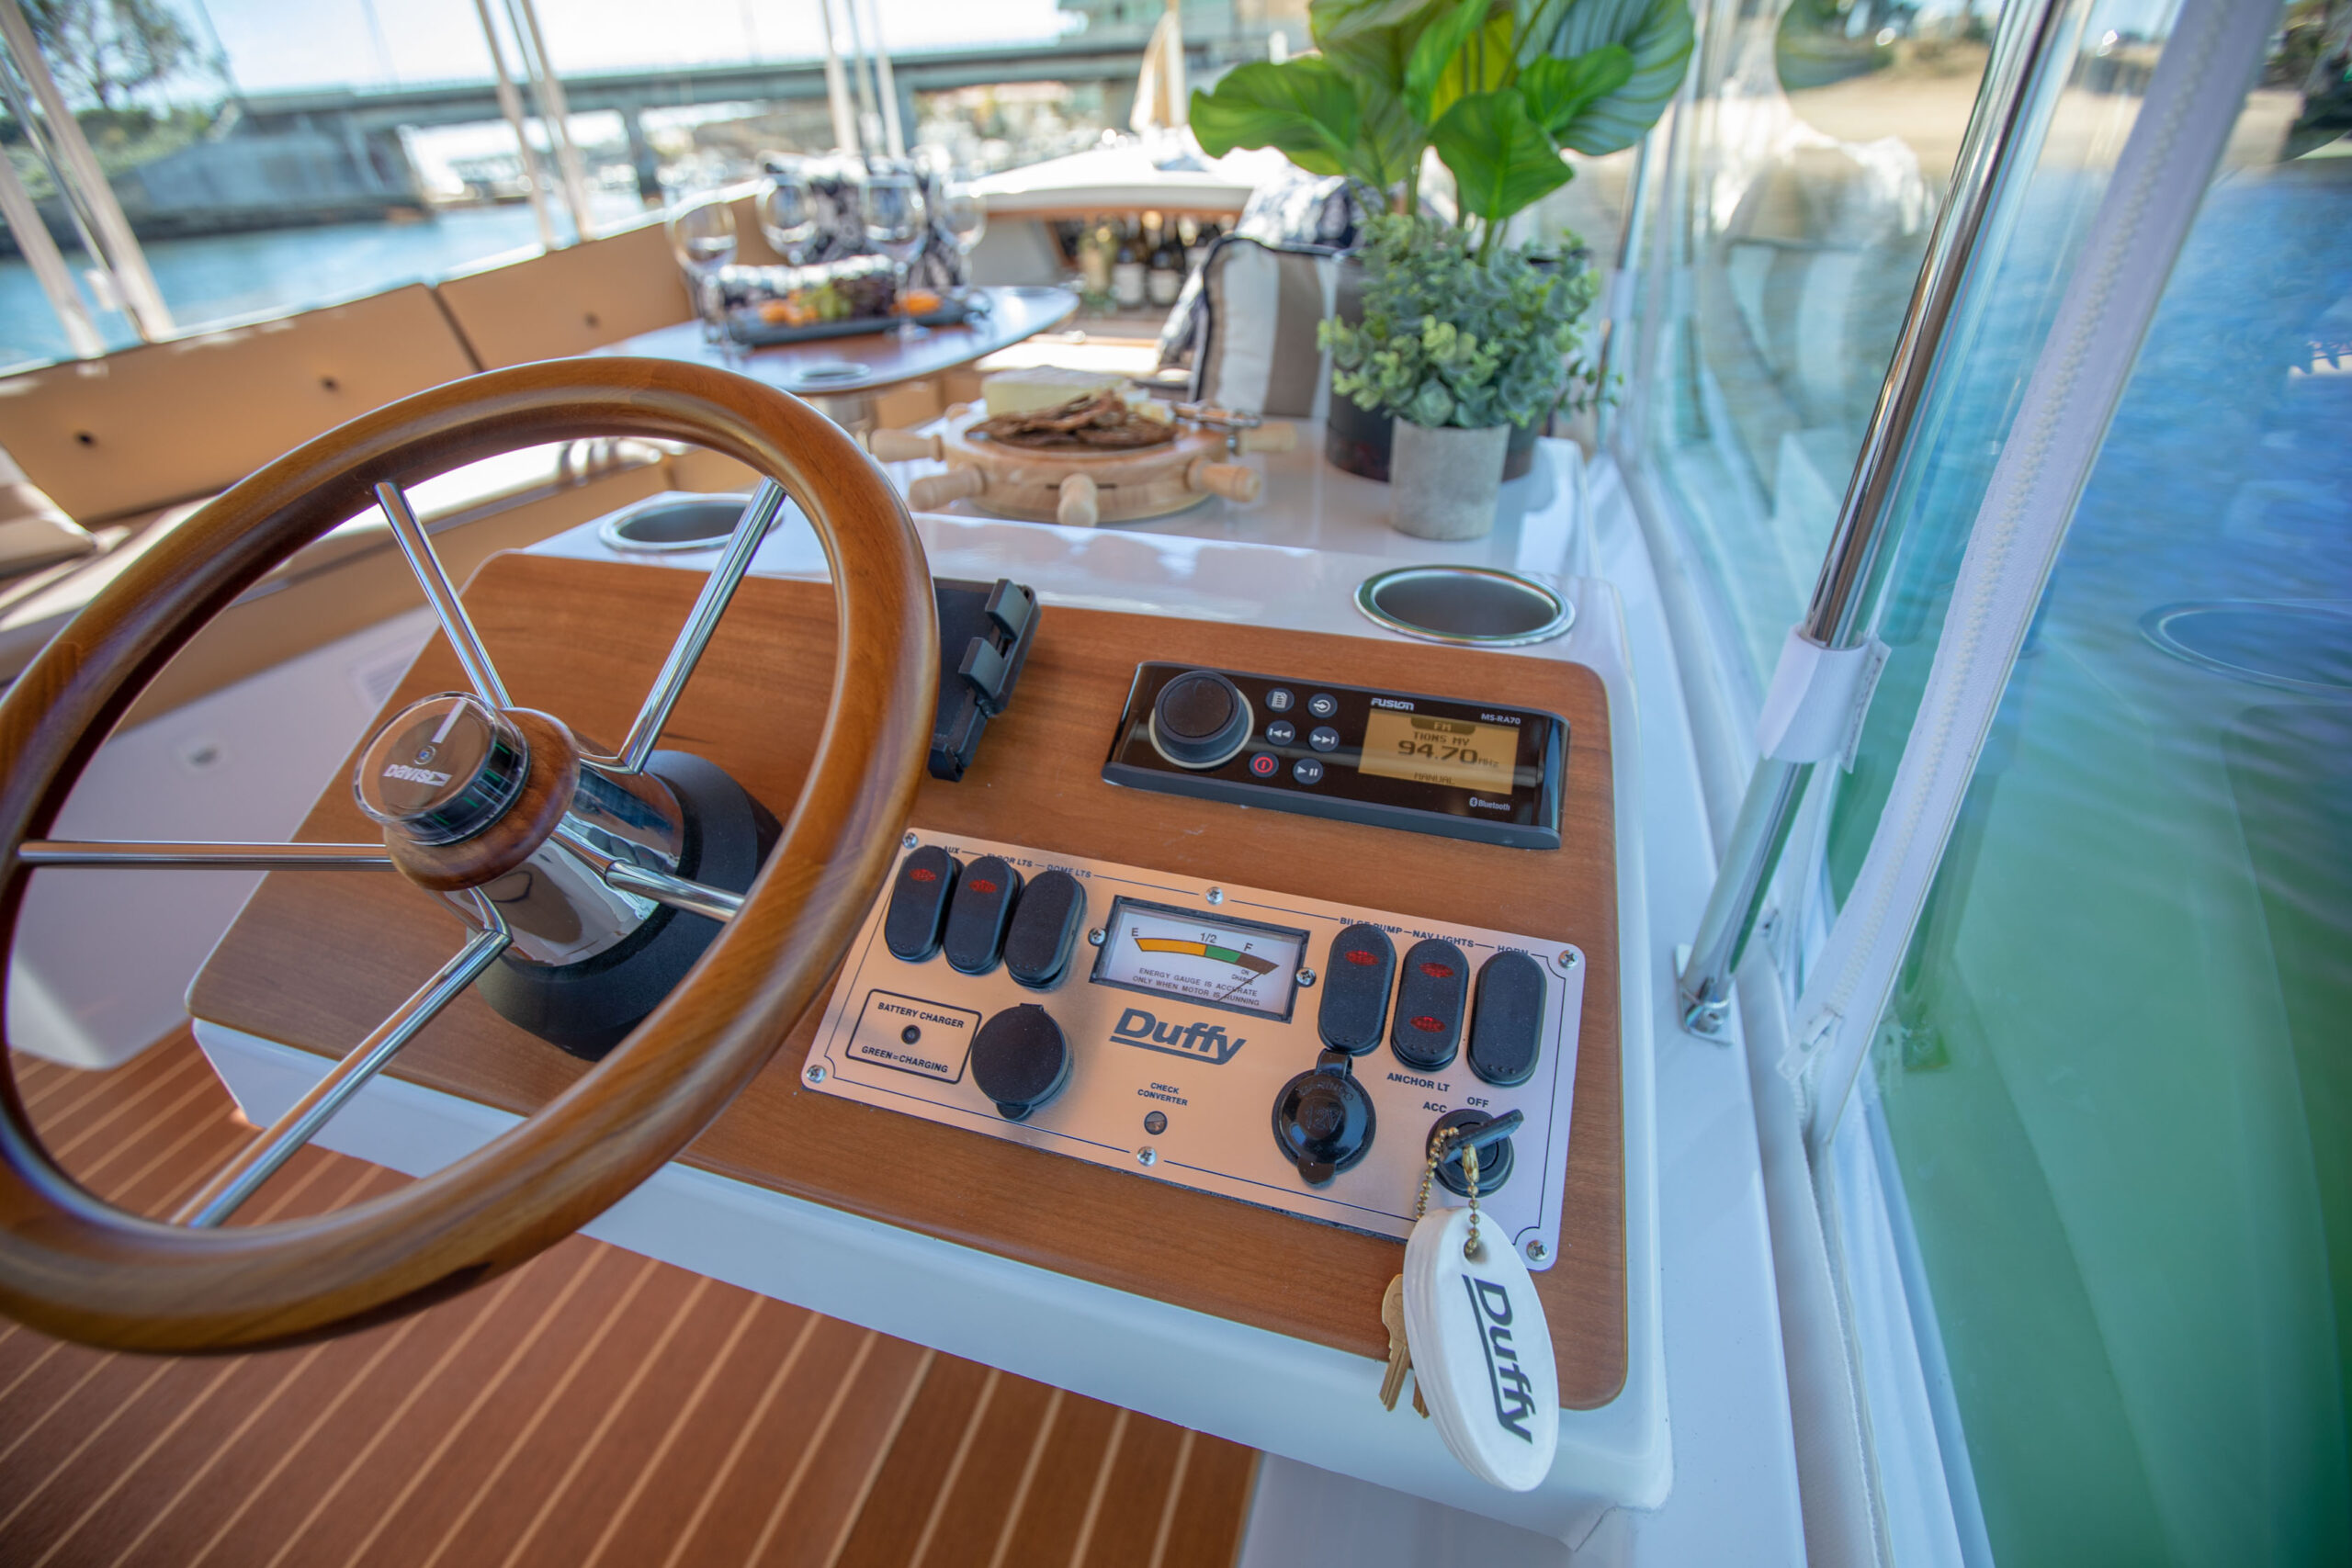 Duffy-Electric-Boats-22SC-Interior-2021_Med-37